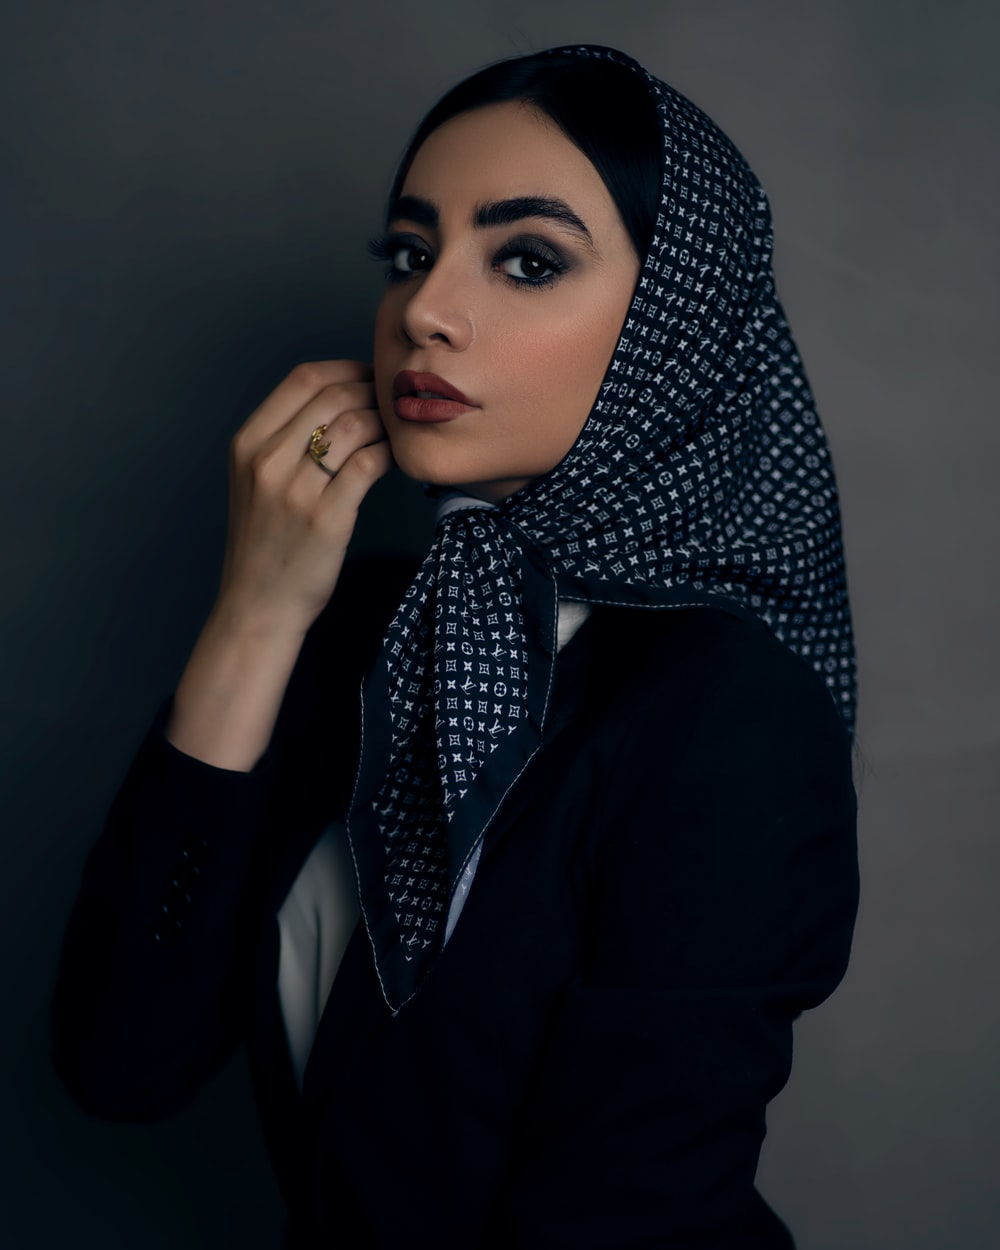 woman in black and white hijab